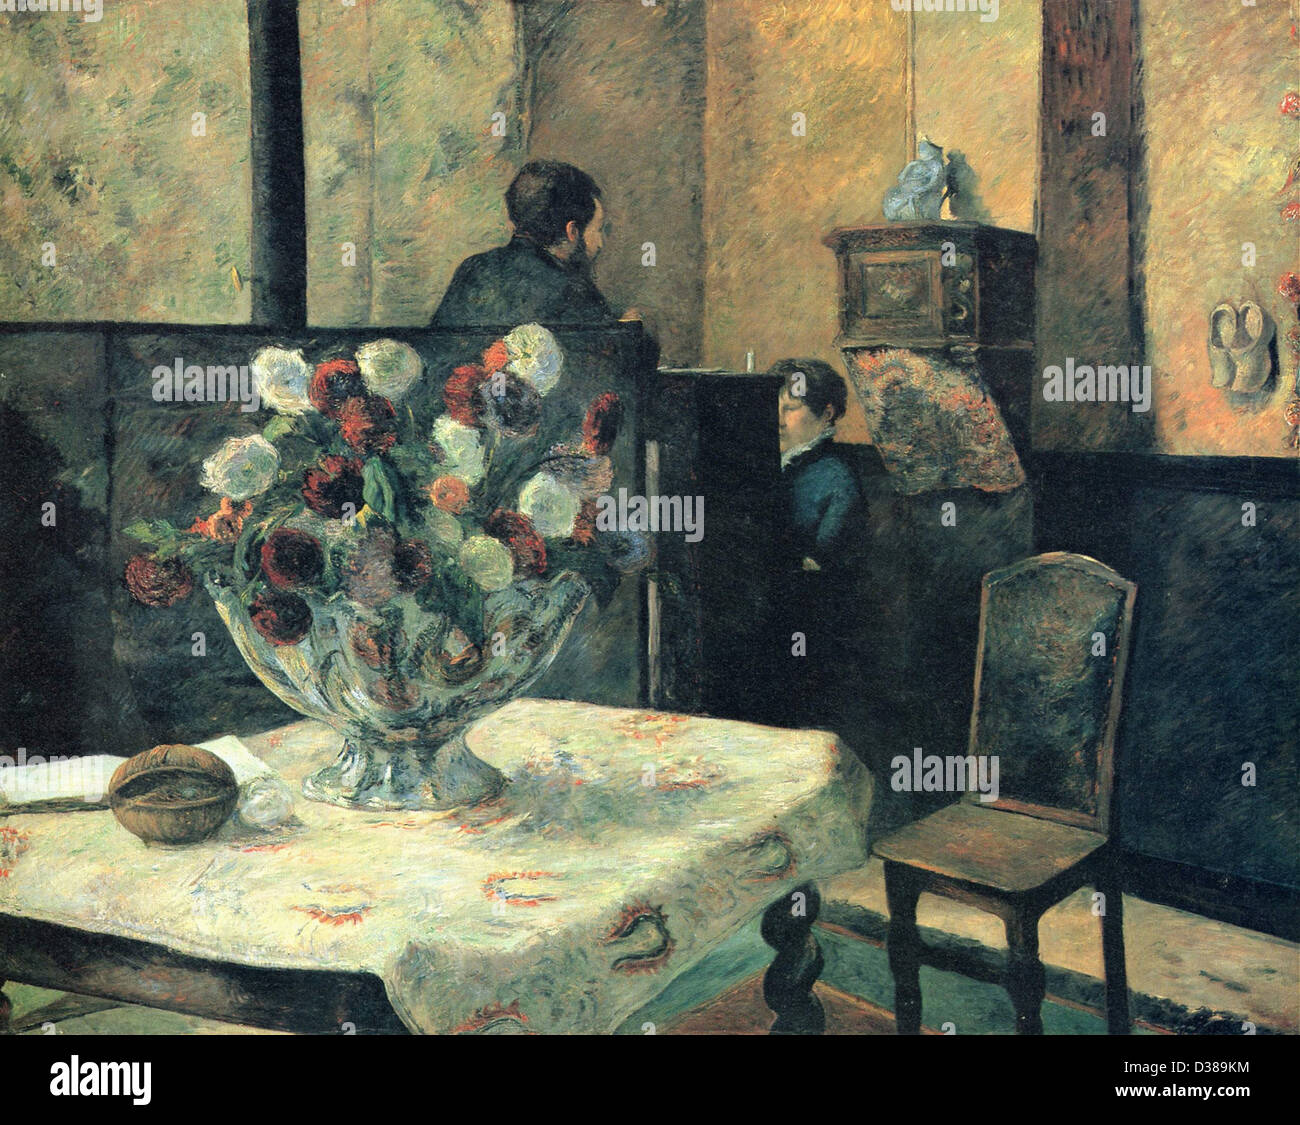 Paul Gauguin Interieur du Peintre Paris, rue Carcel 1881 Oslo, kann Stockbild